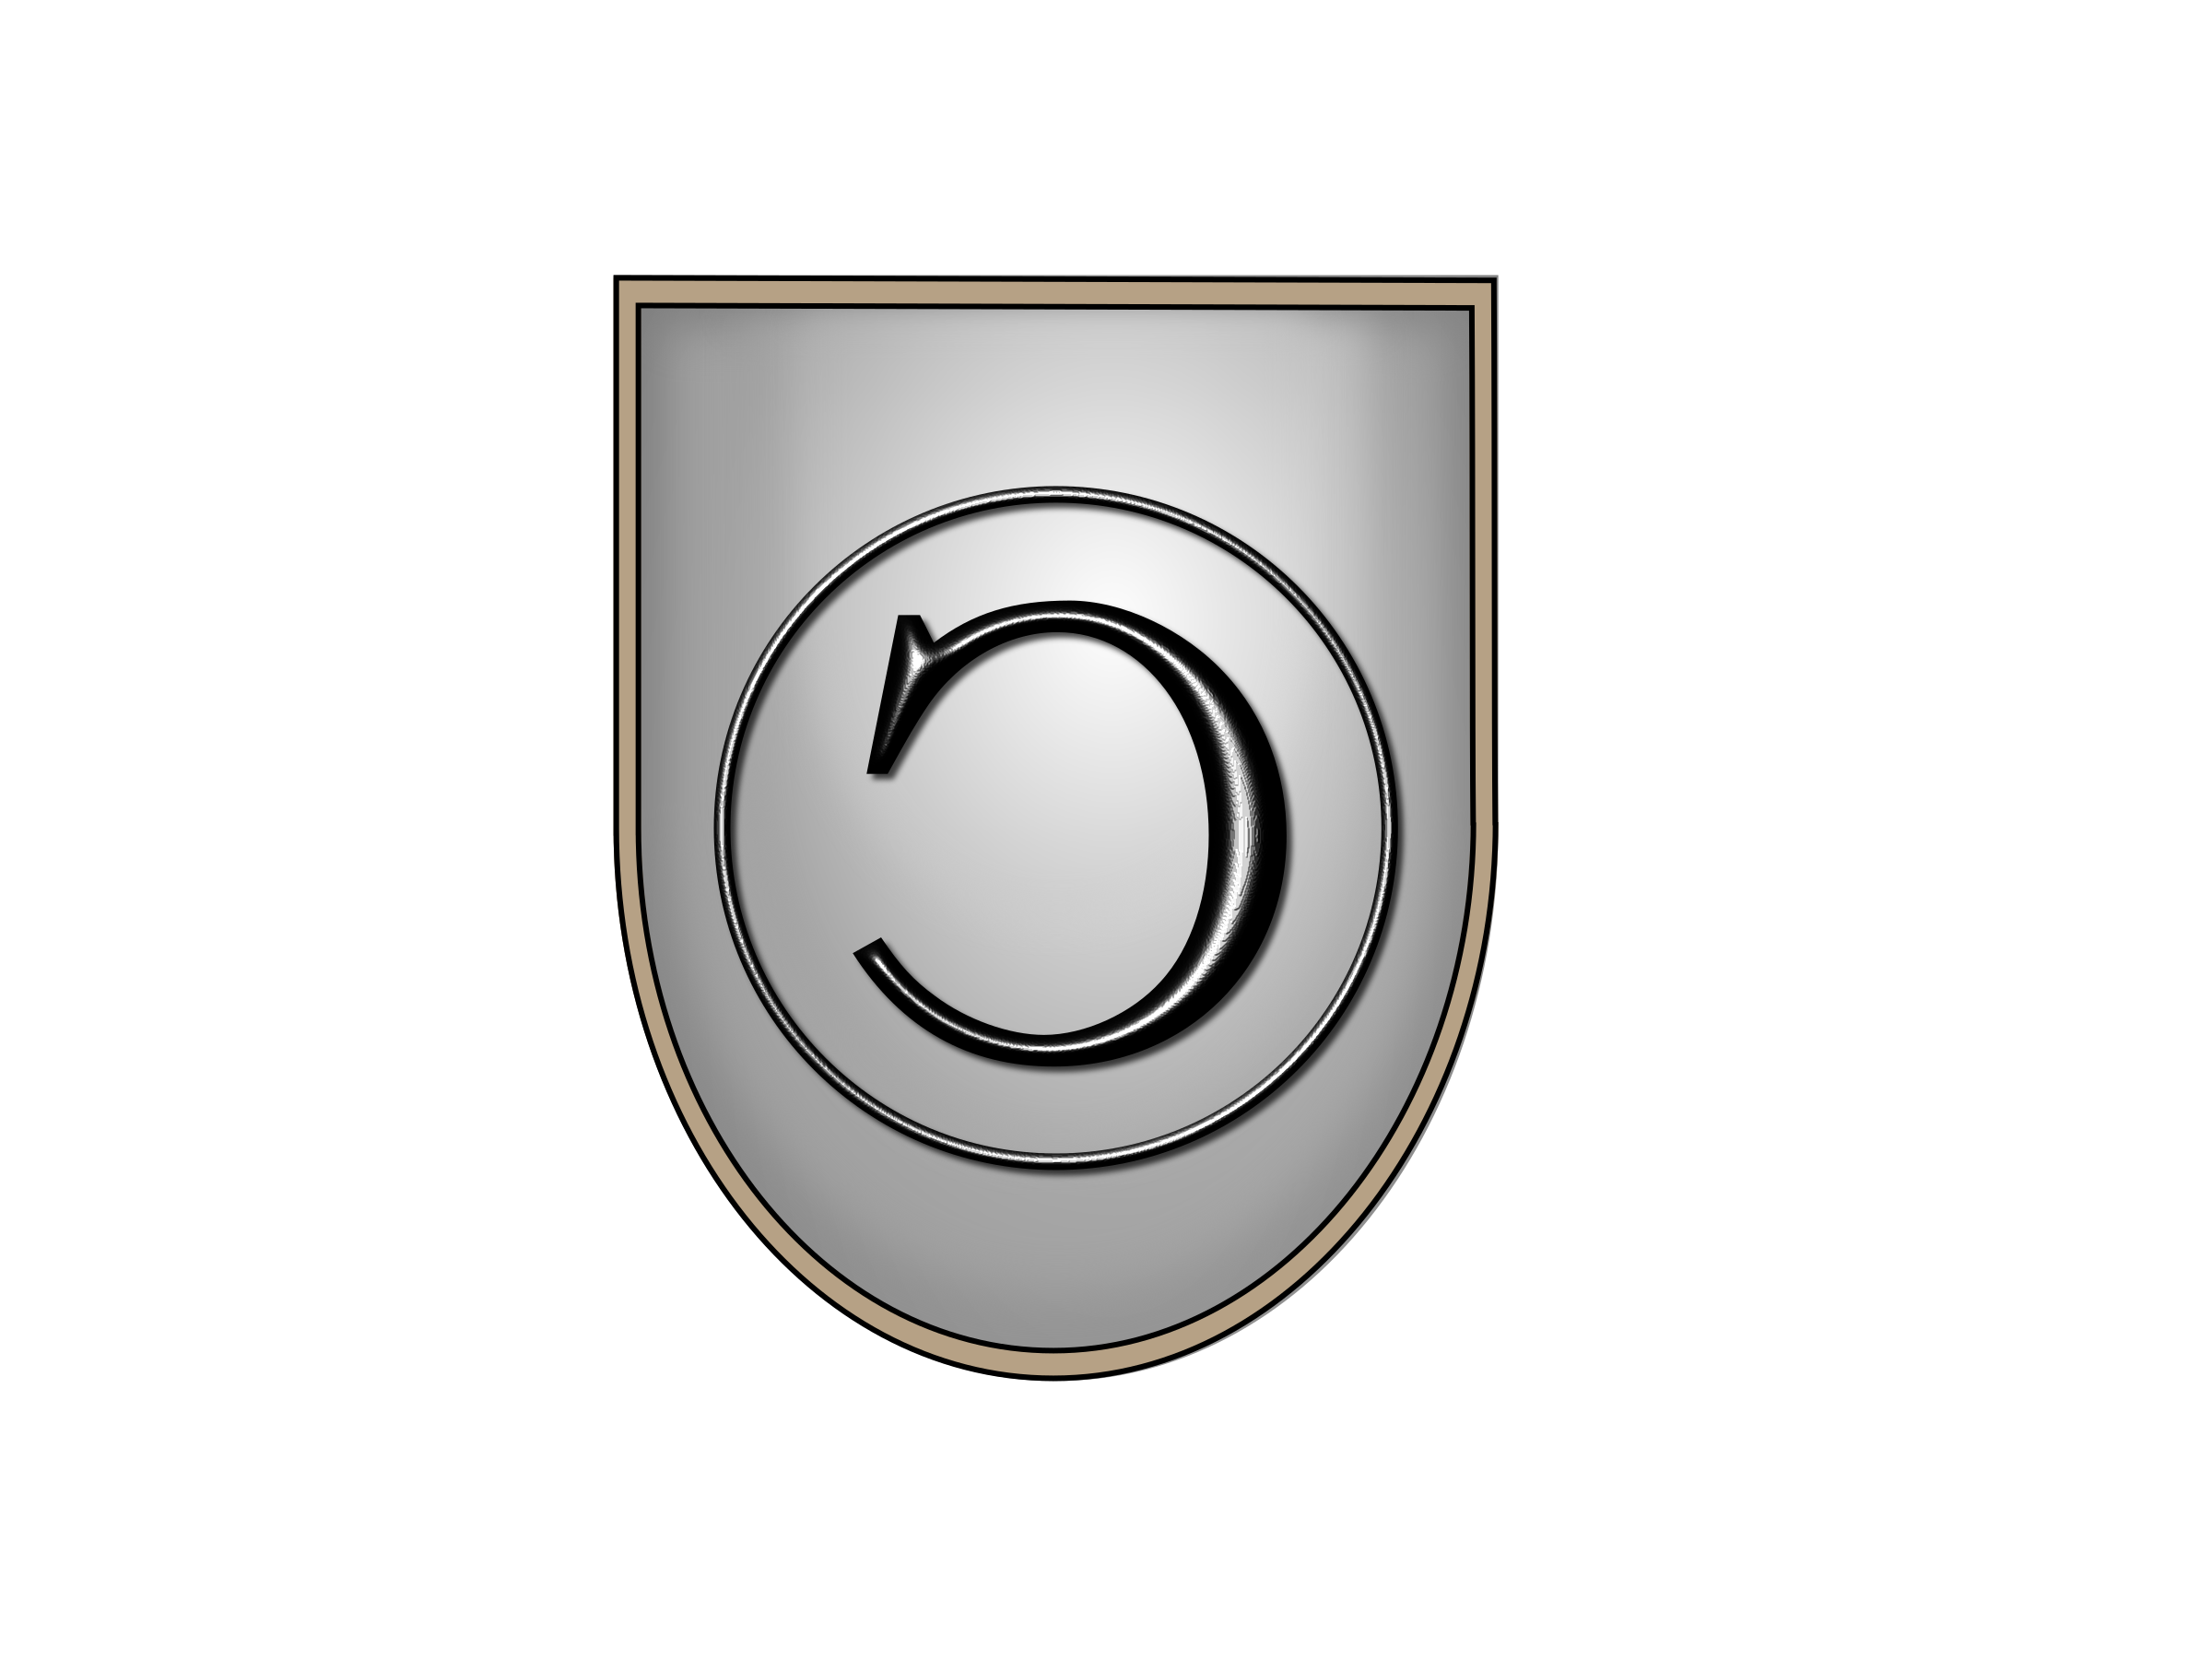 Copyleft shield by Sonshine_Penguin